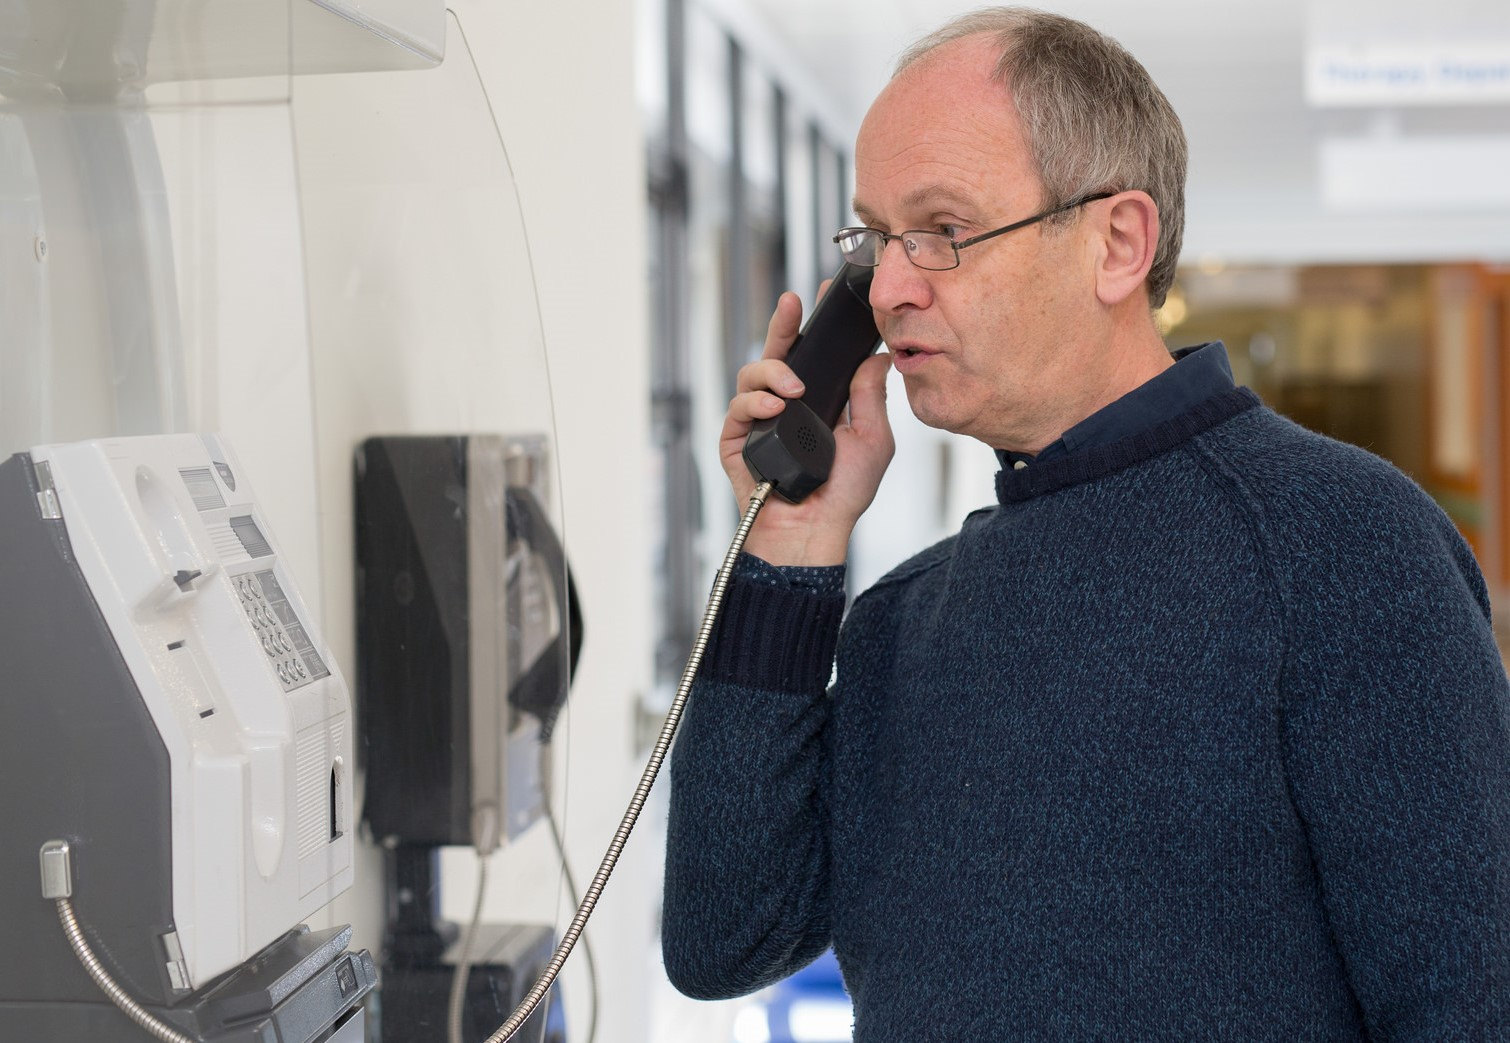 Man using wall mounted public phone